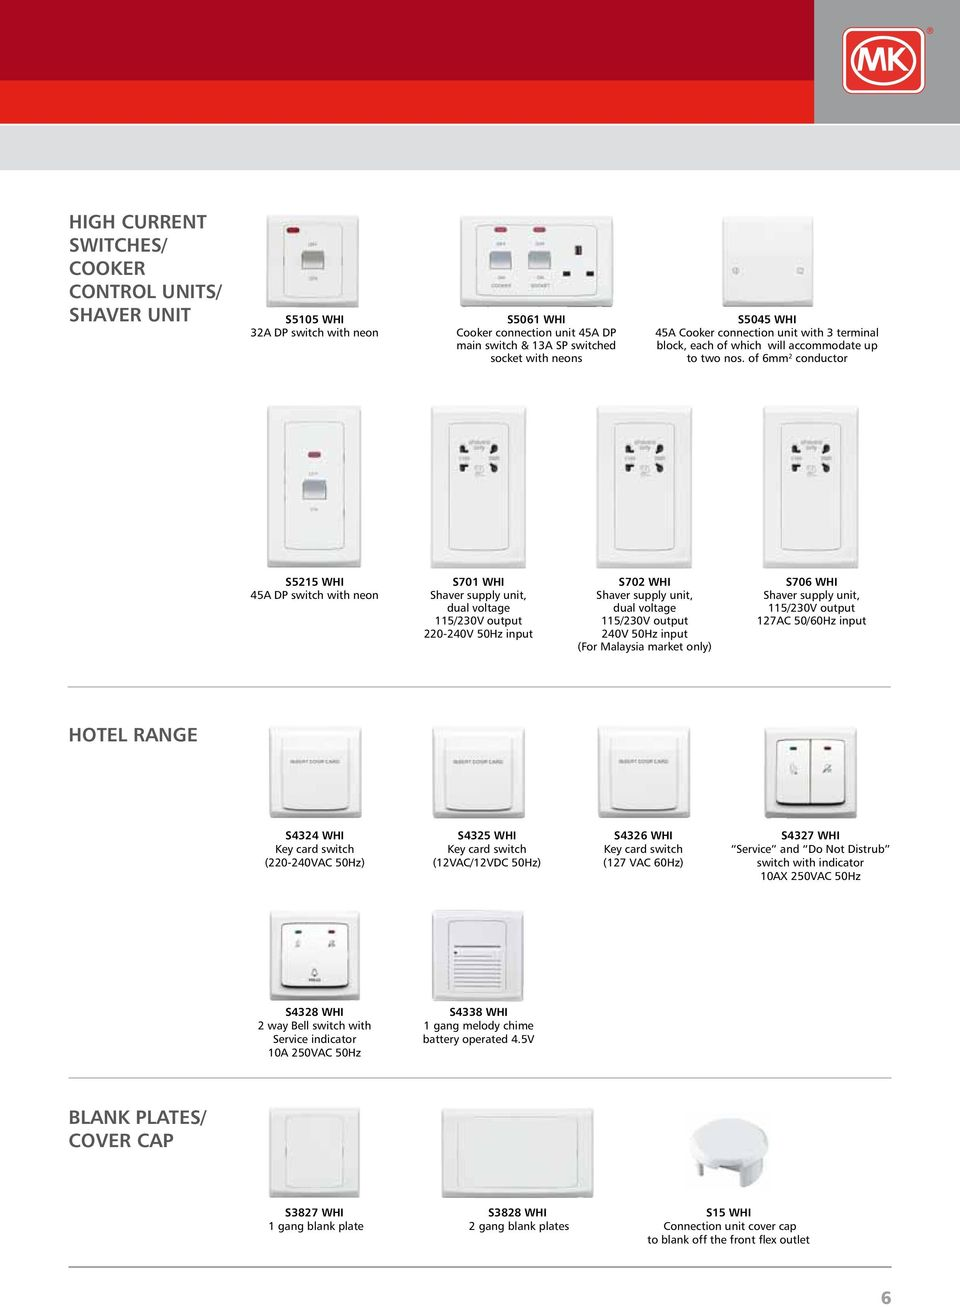 of 6mm 2 conductor S5215 WHI 45A DP switch with neon S701 WHI Shaver supply unit, dual voltage 115/230V output 220-240V 50Hz input S702 WHI Shaver supply unit, dual voltage 115/230V output 240V 50Hz